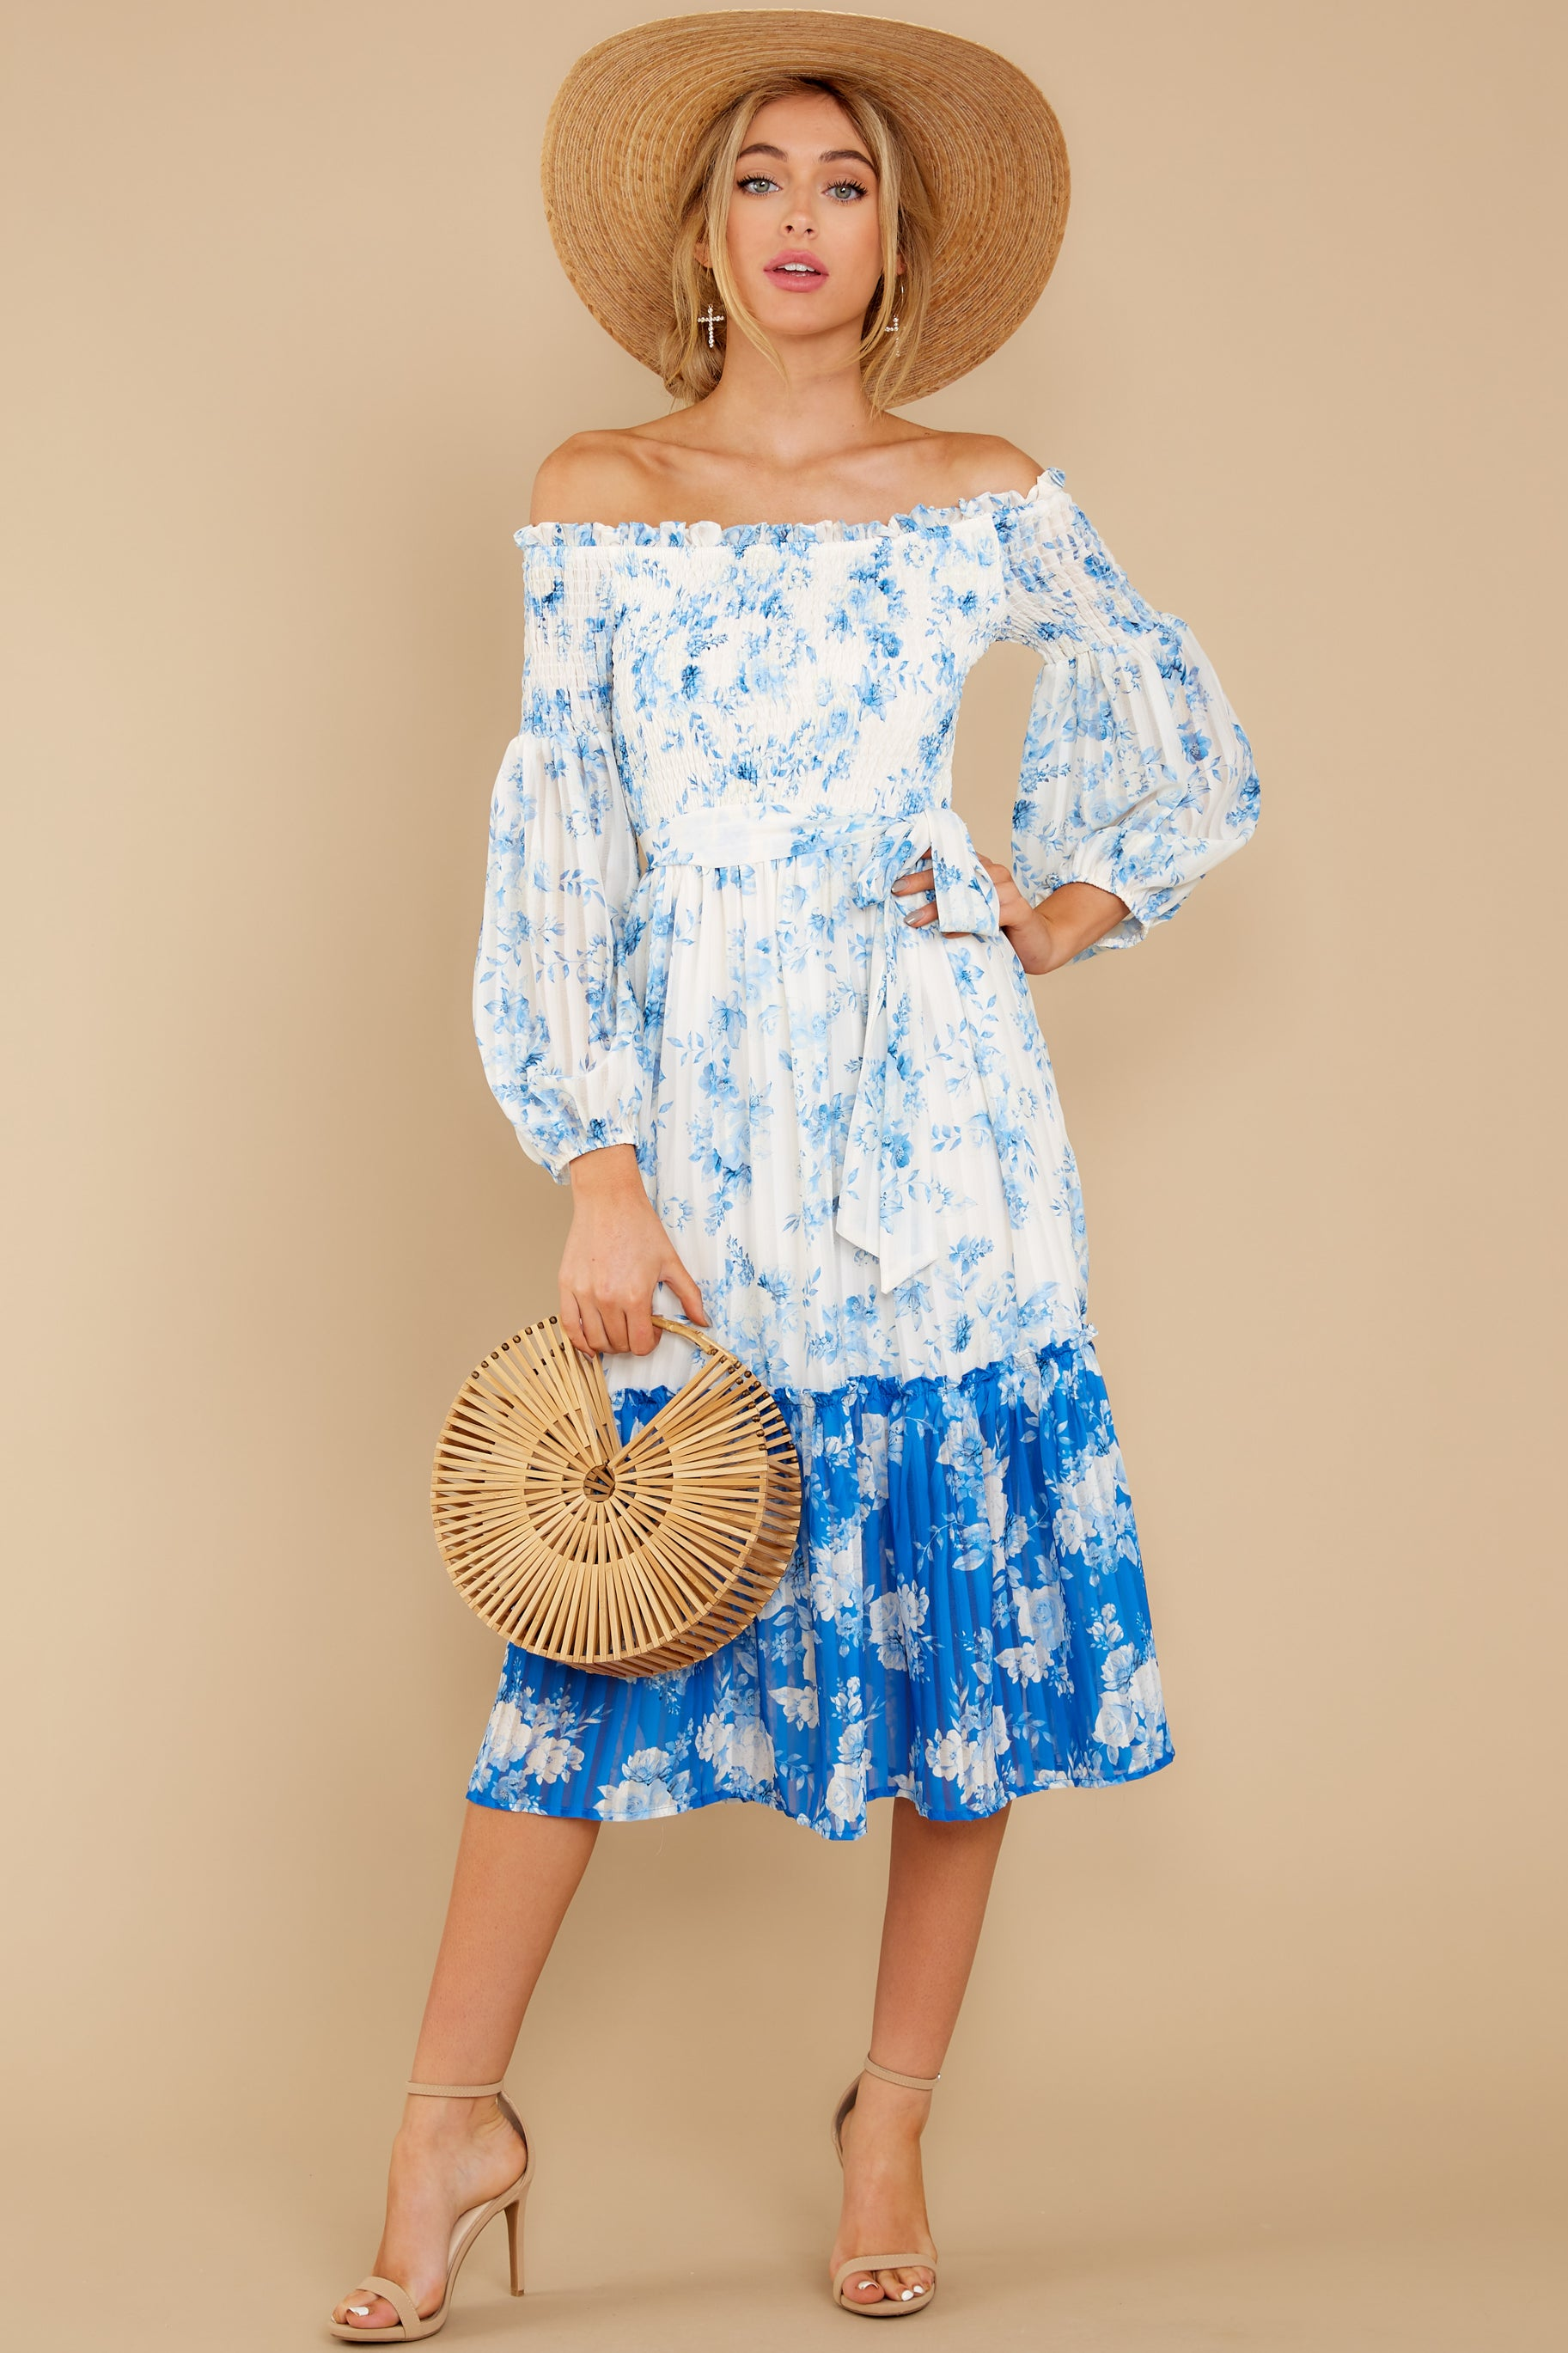 4 Looking Forward To Spring Blue Multi Off The Shoulder Midi Dress at reddress.com